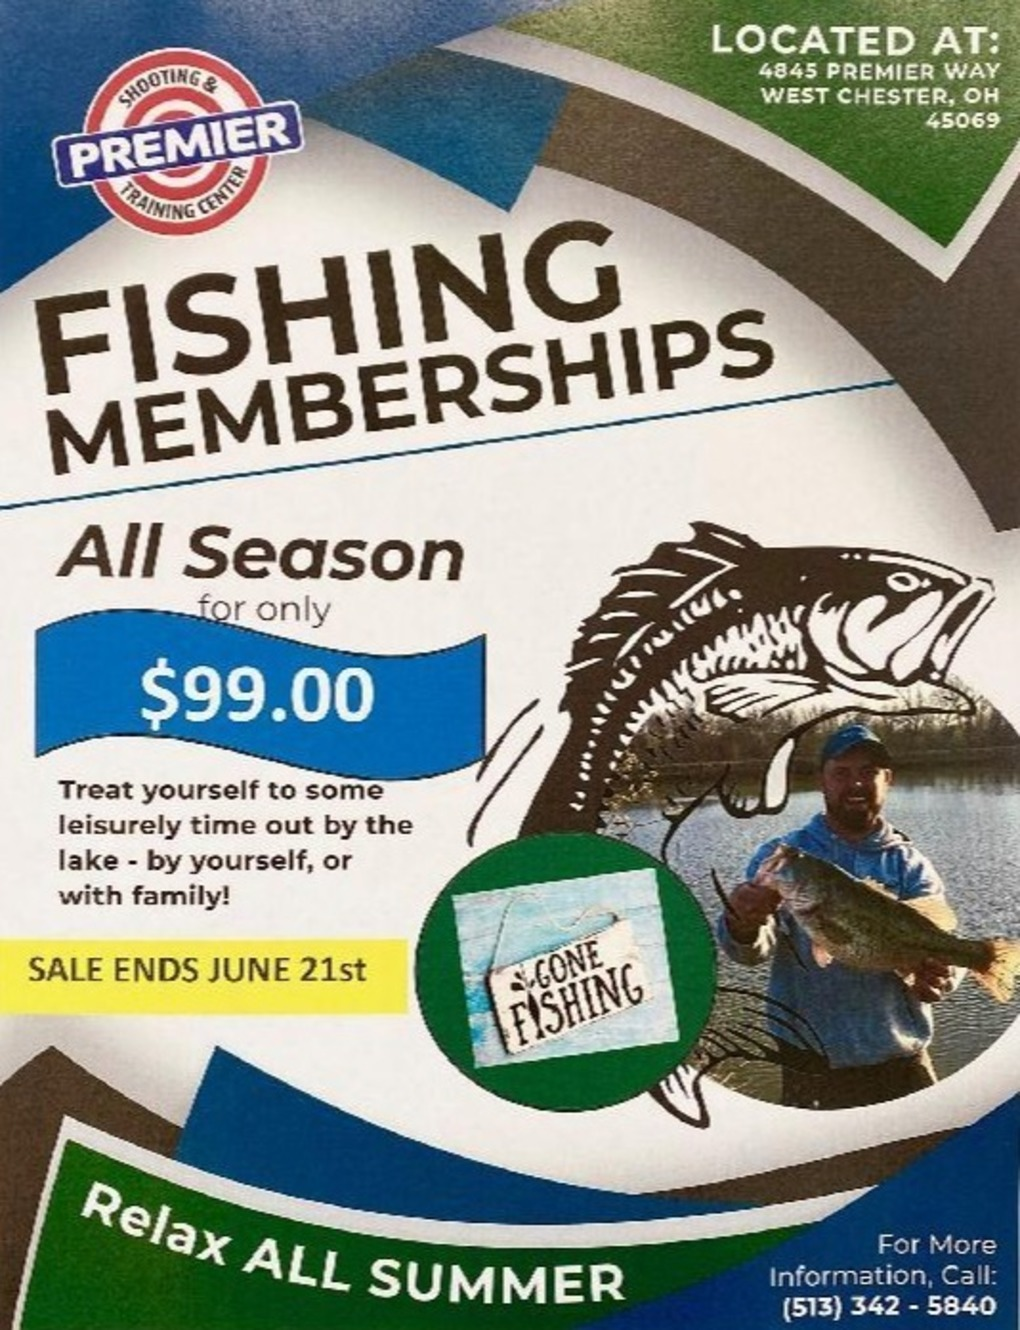 Contact PREMIER - Fishing Pass Special !!!